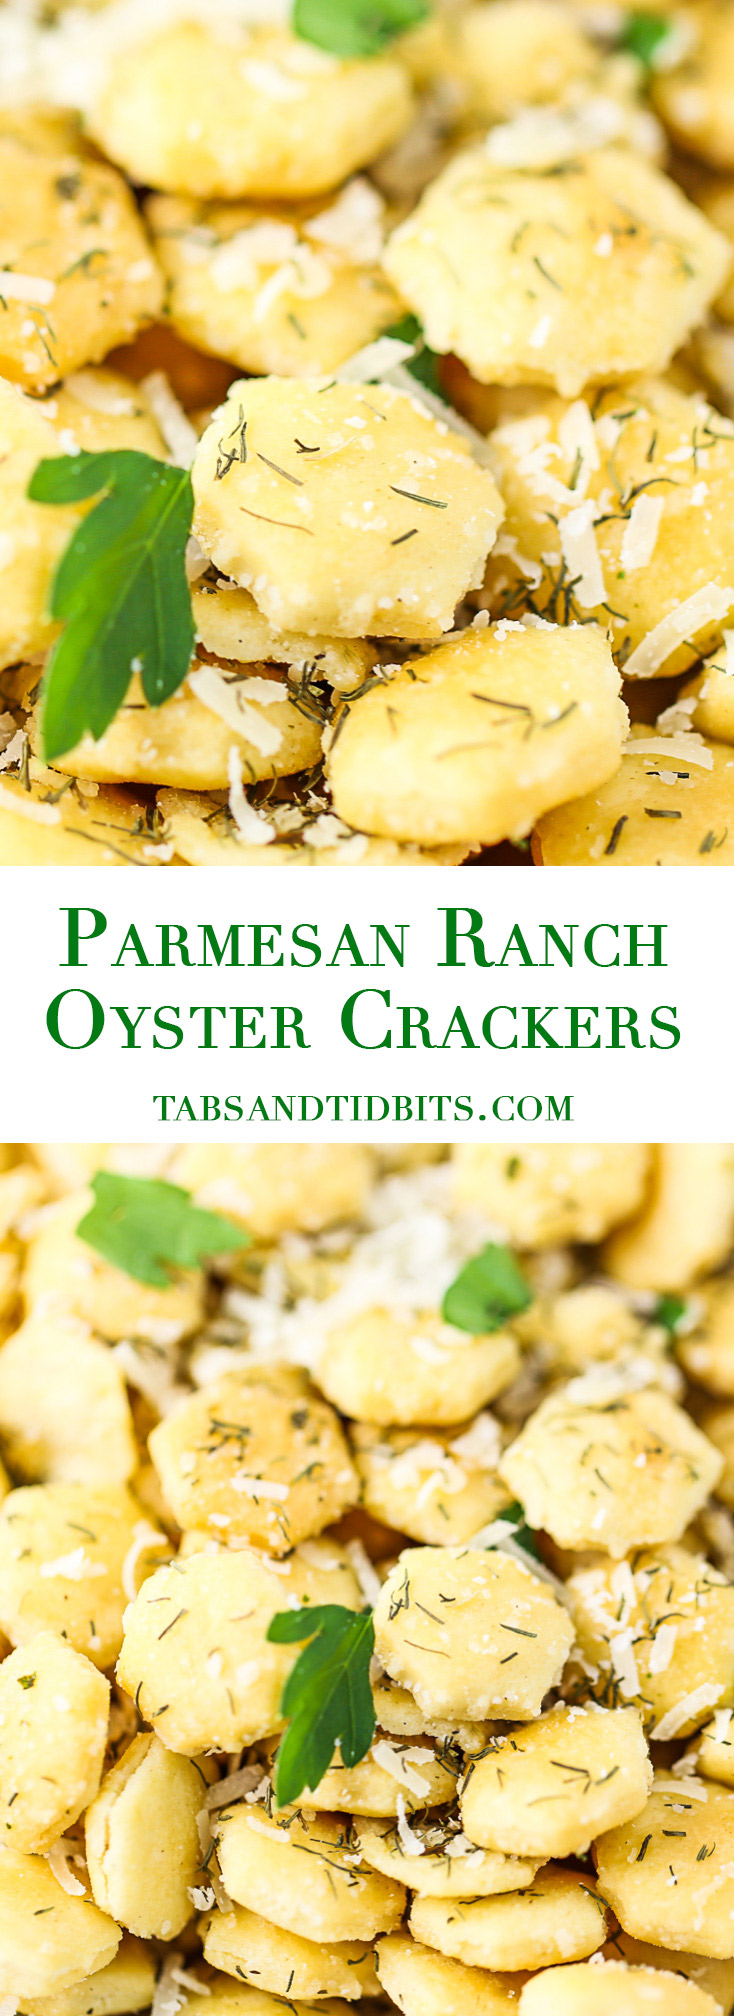 Parmesan Ranch Oyster Crackers - Flavorful seasoned and buttery oyster crackers made right in the slow cooker!